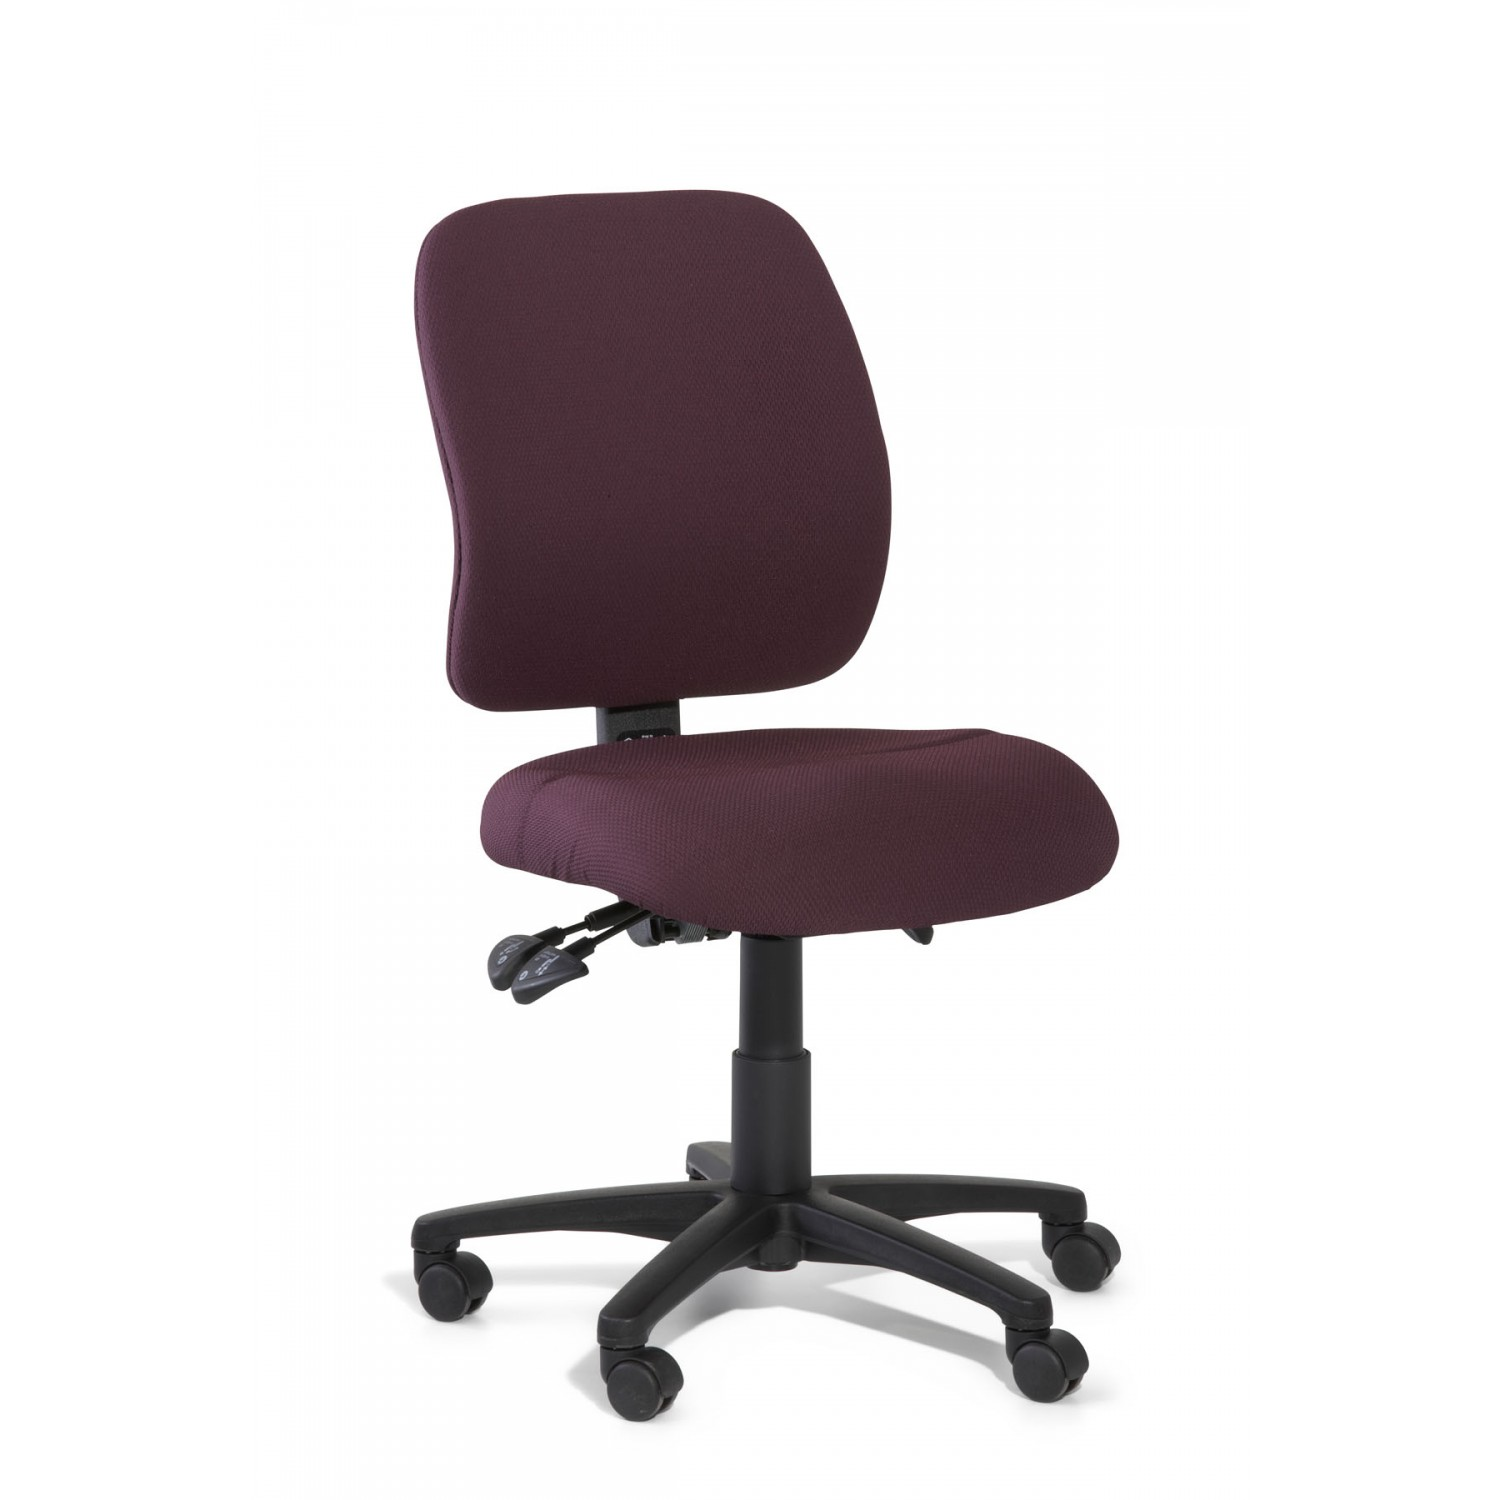 Slimline Clerical Chair Office Furniture Since 1990